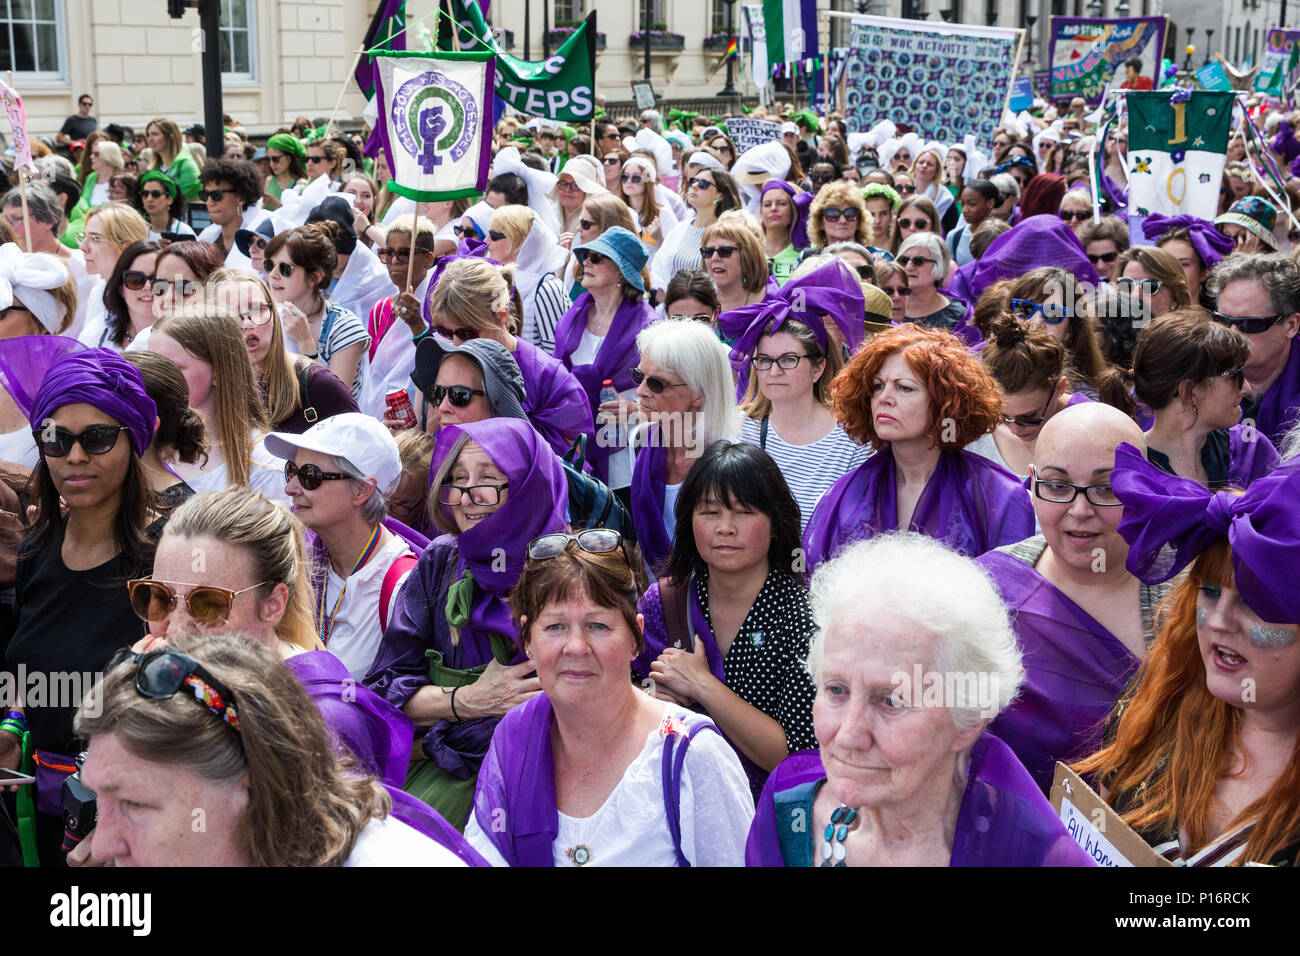 London, UK. 10th June, 2018. PROCESSIONS, a mass participation artwork produced by Artichoke and commissioned by 14-18 NOW. The artwork provides a living portrait of UK women in the 21st century and is is intended as 'a visual expression of equality, strength and cultural representation, inviting all women to unite and celebrate the early fight for the right to vote and express what it means to be a woman today'. Credit: Mark Kerrison/Alamy Live News - Stock Image